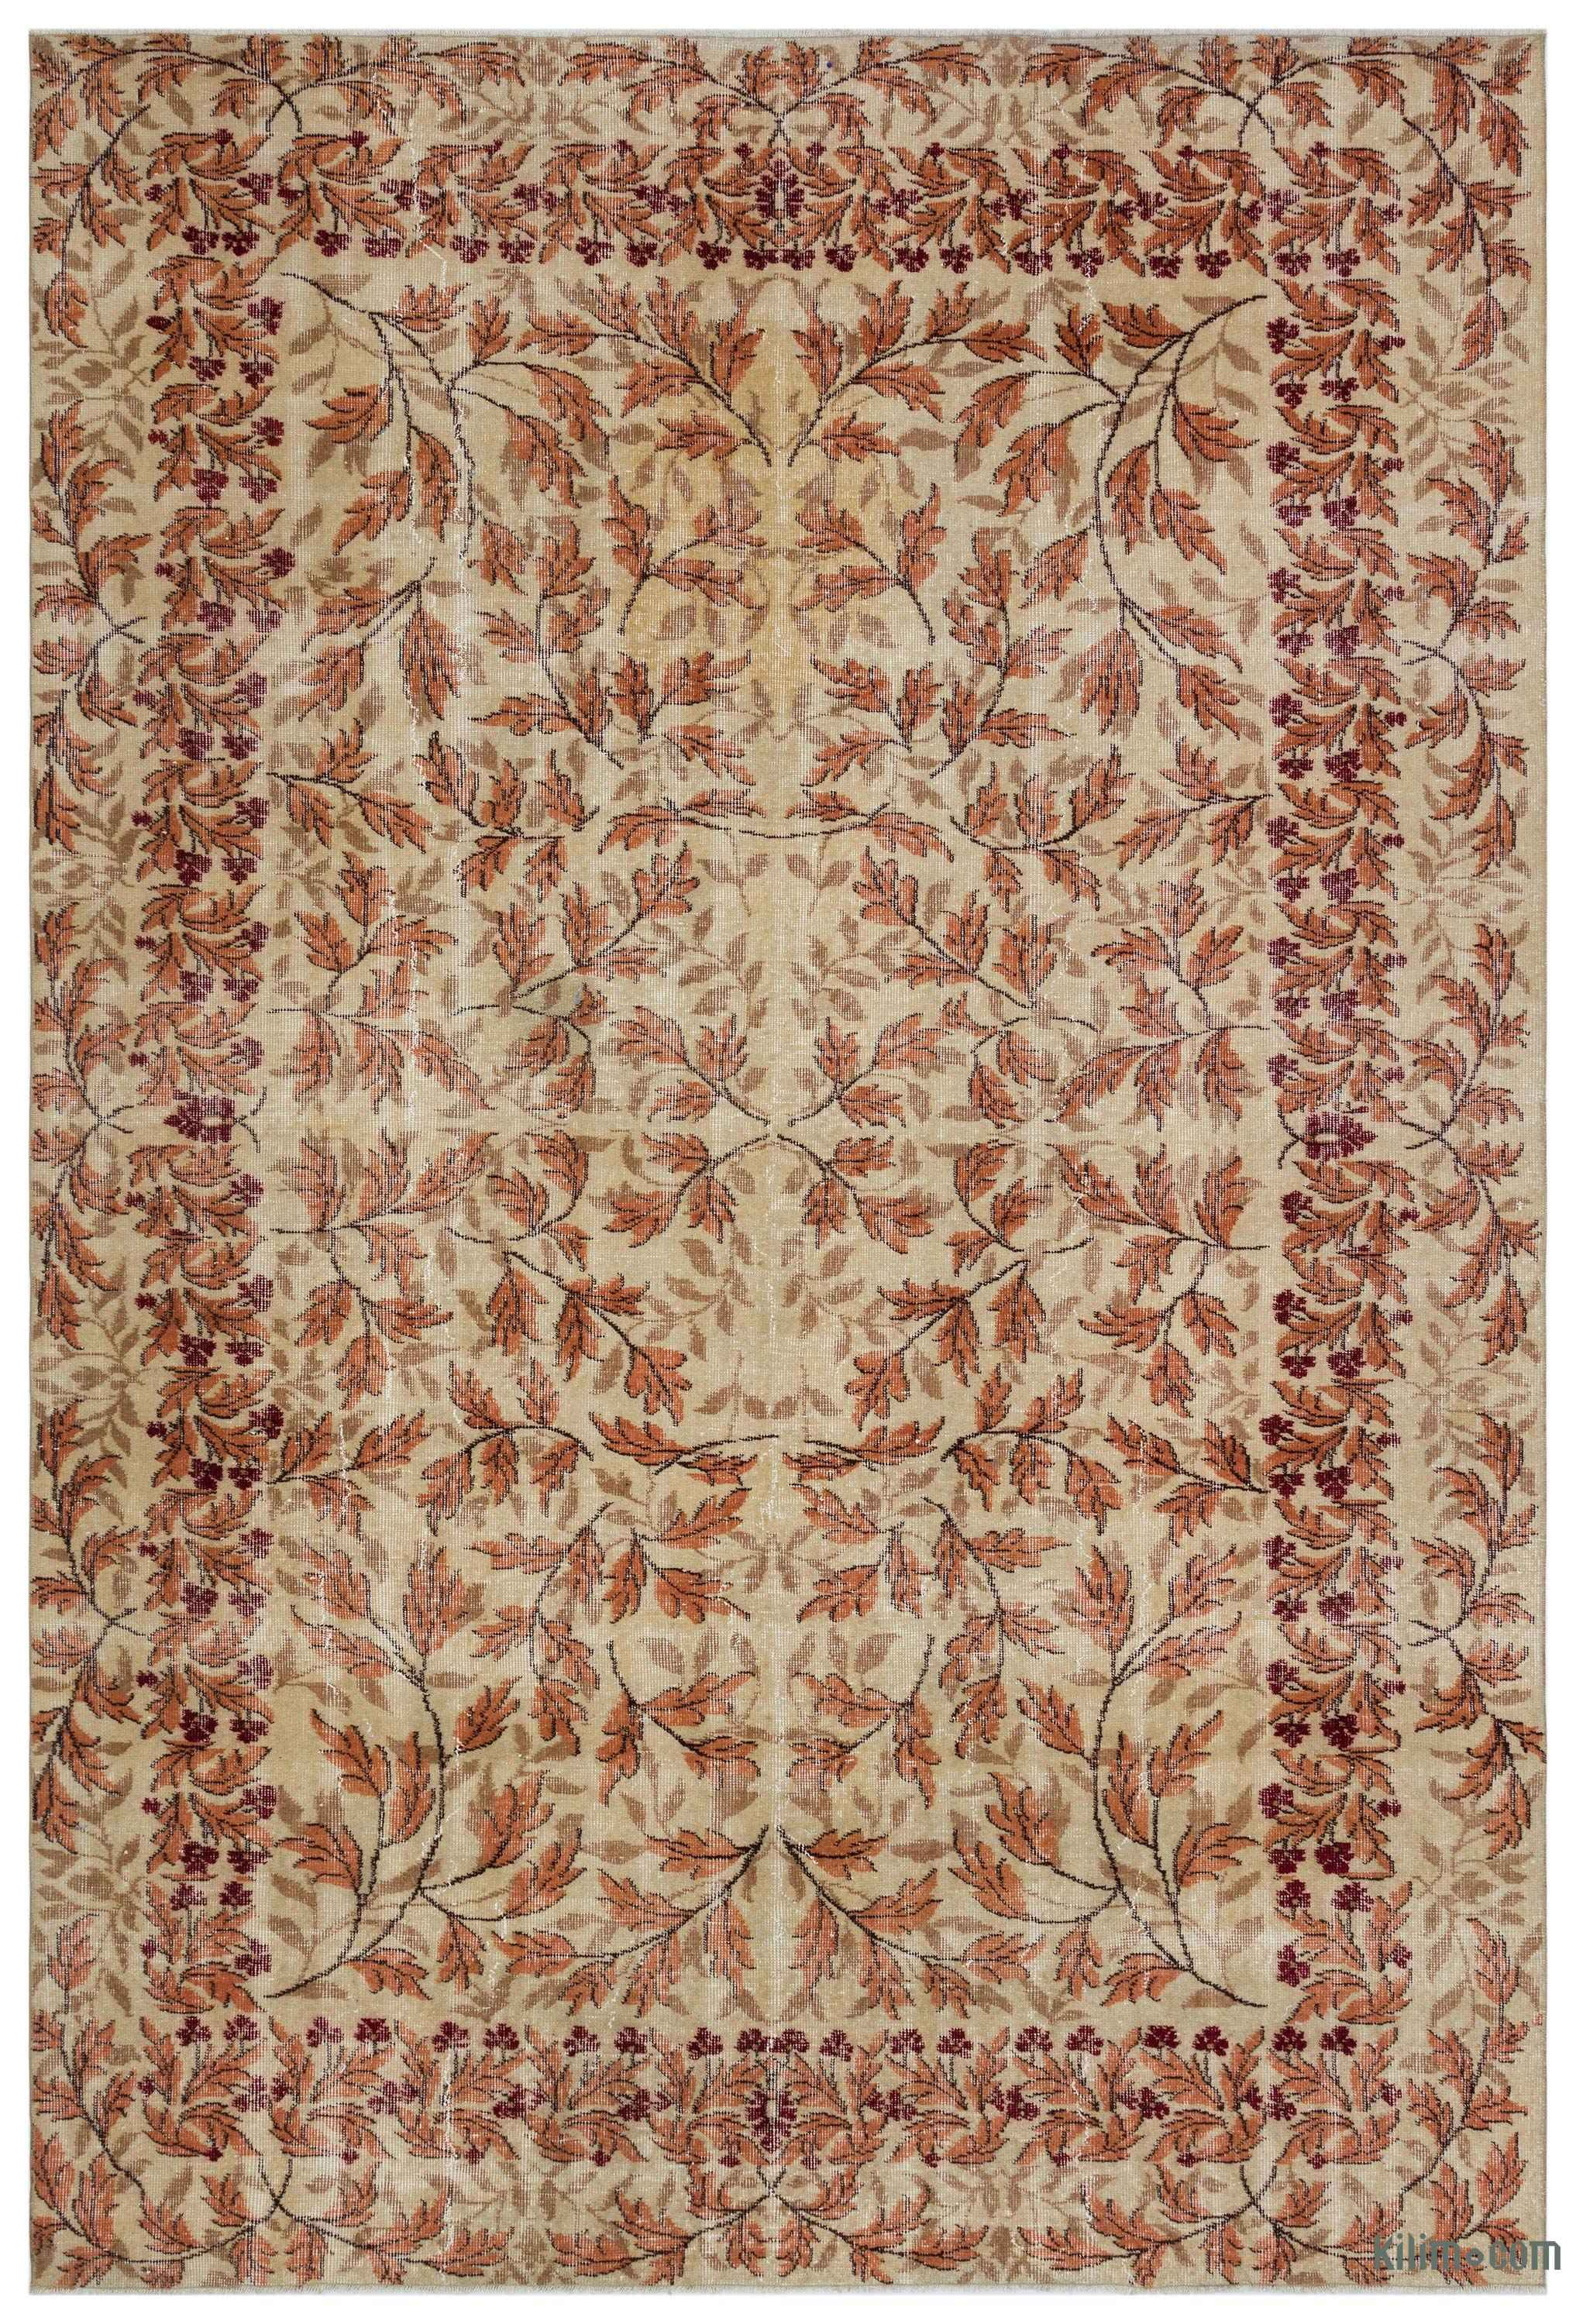 Turkish Vintage Area Rug 6 9 X 10 81 In X 120 In Vintage